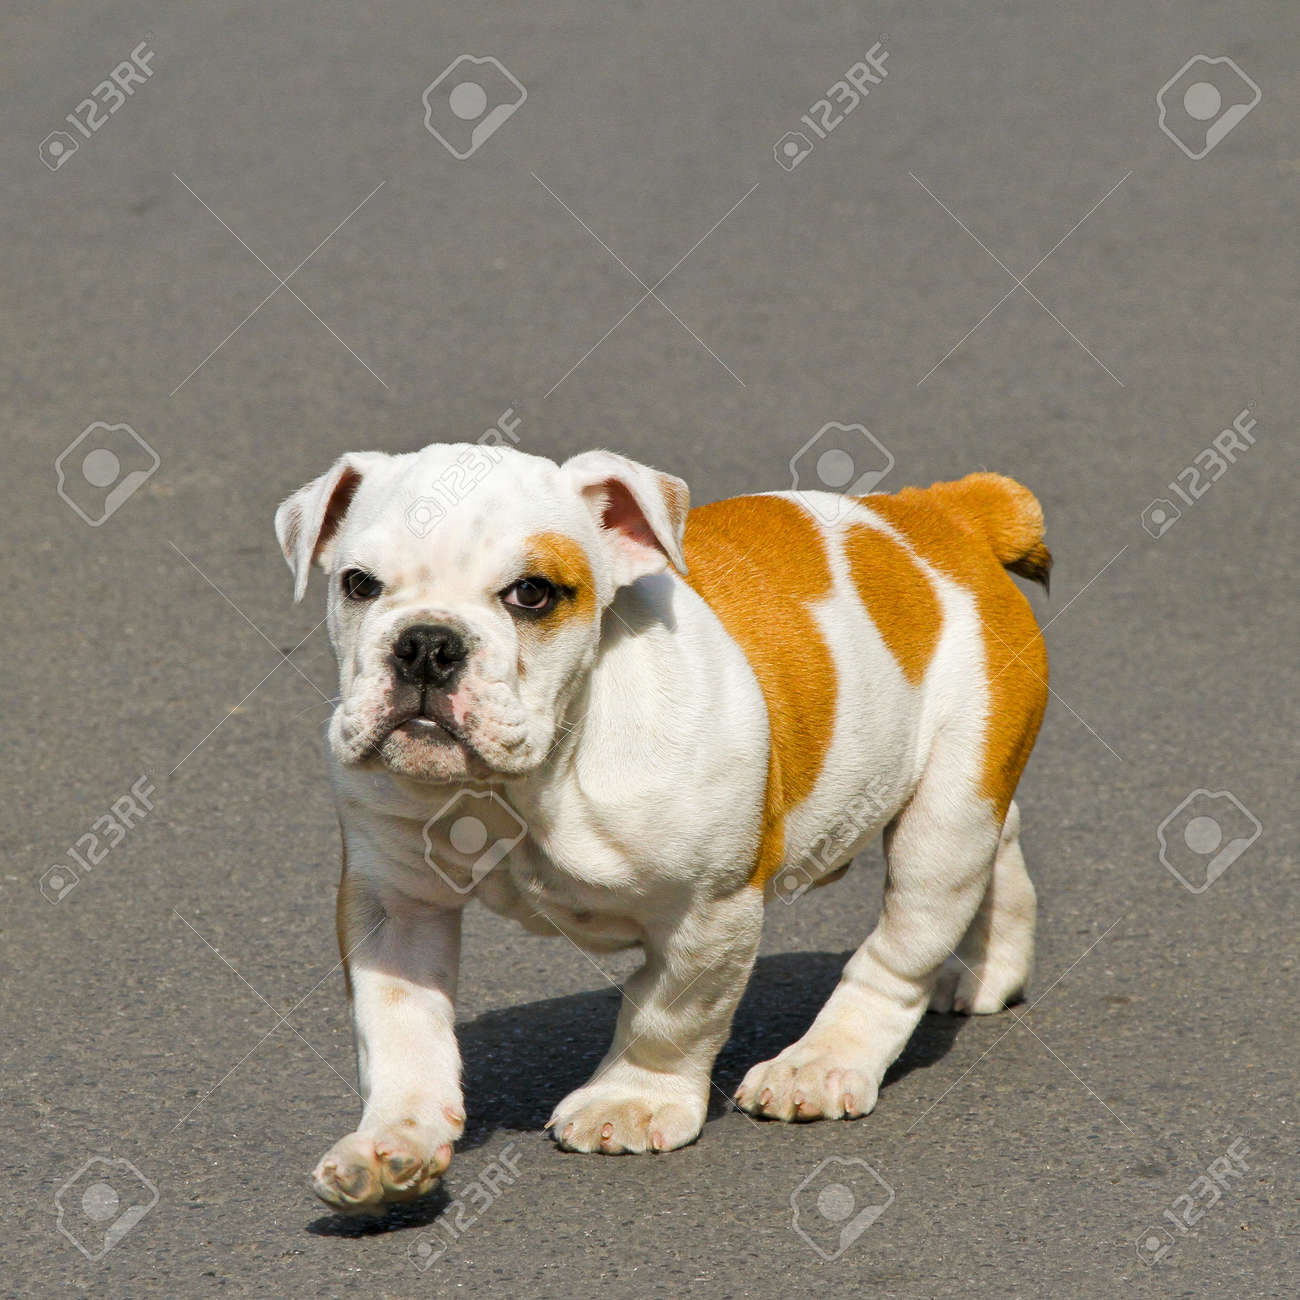 Small English bulldog puppy walking towards camera